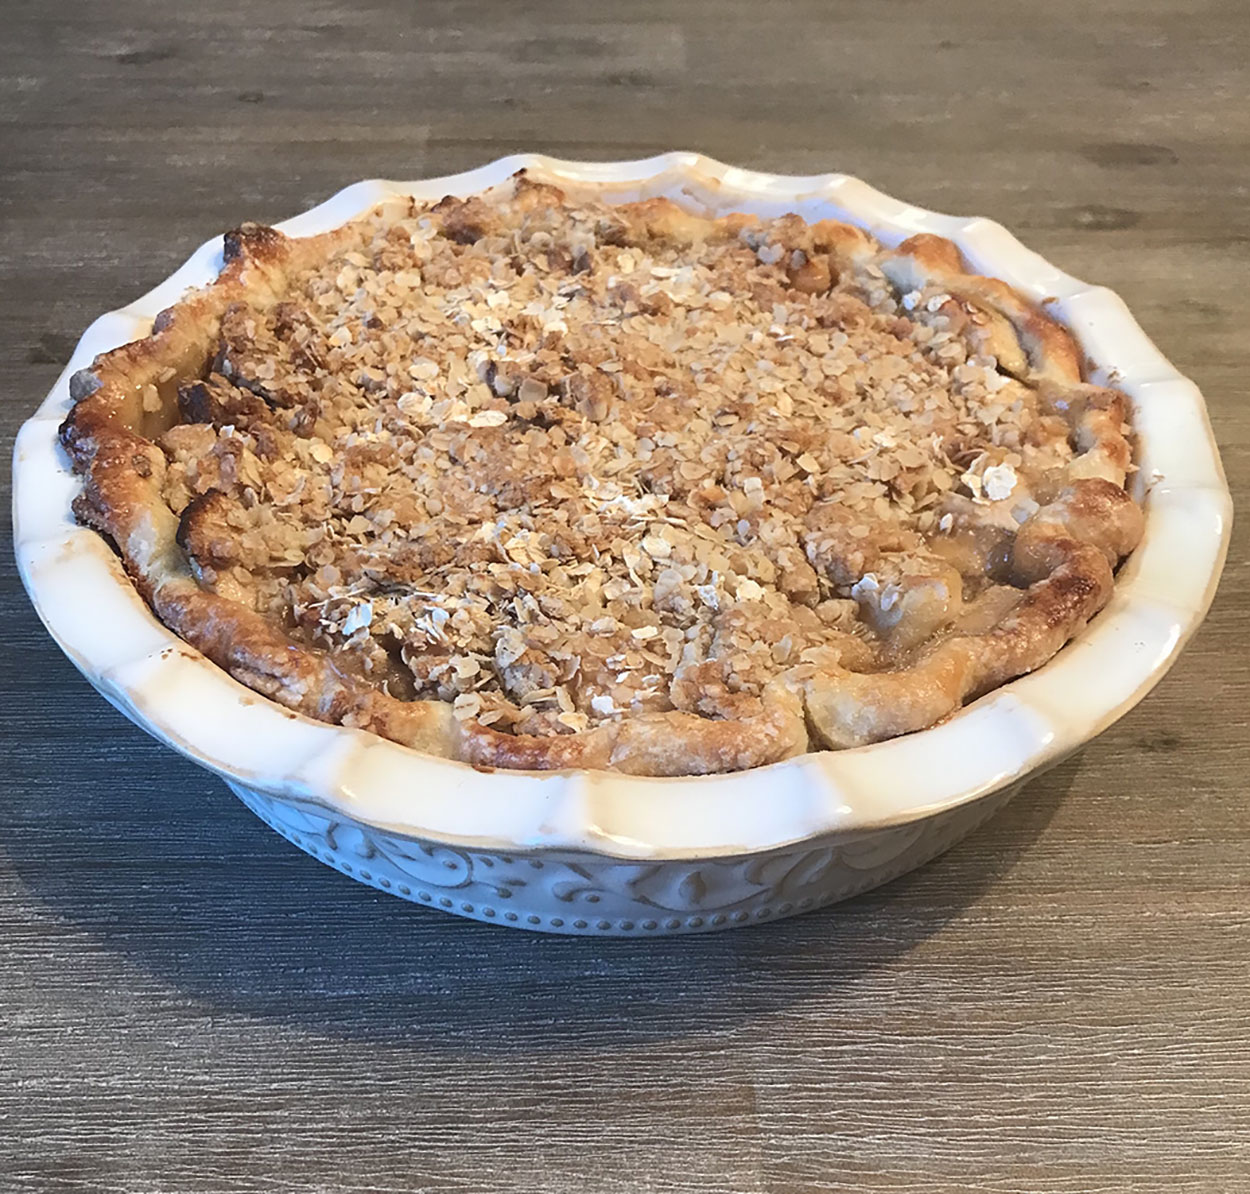 Apple pie and cream sugar crumble style